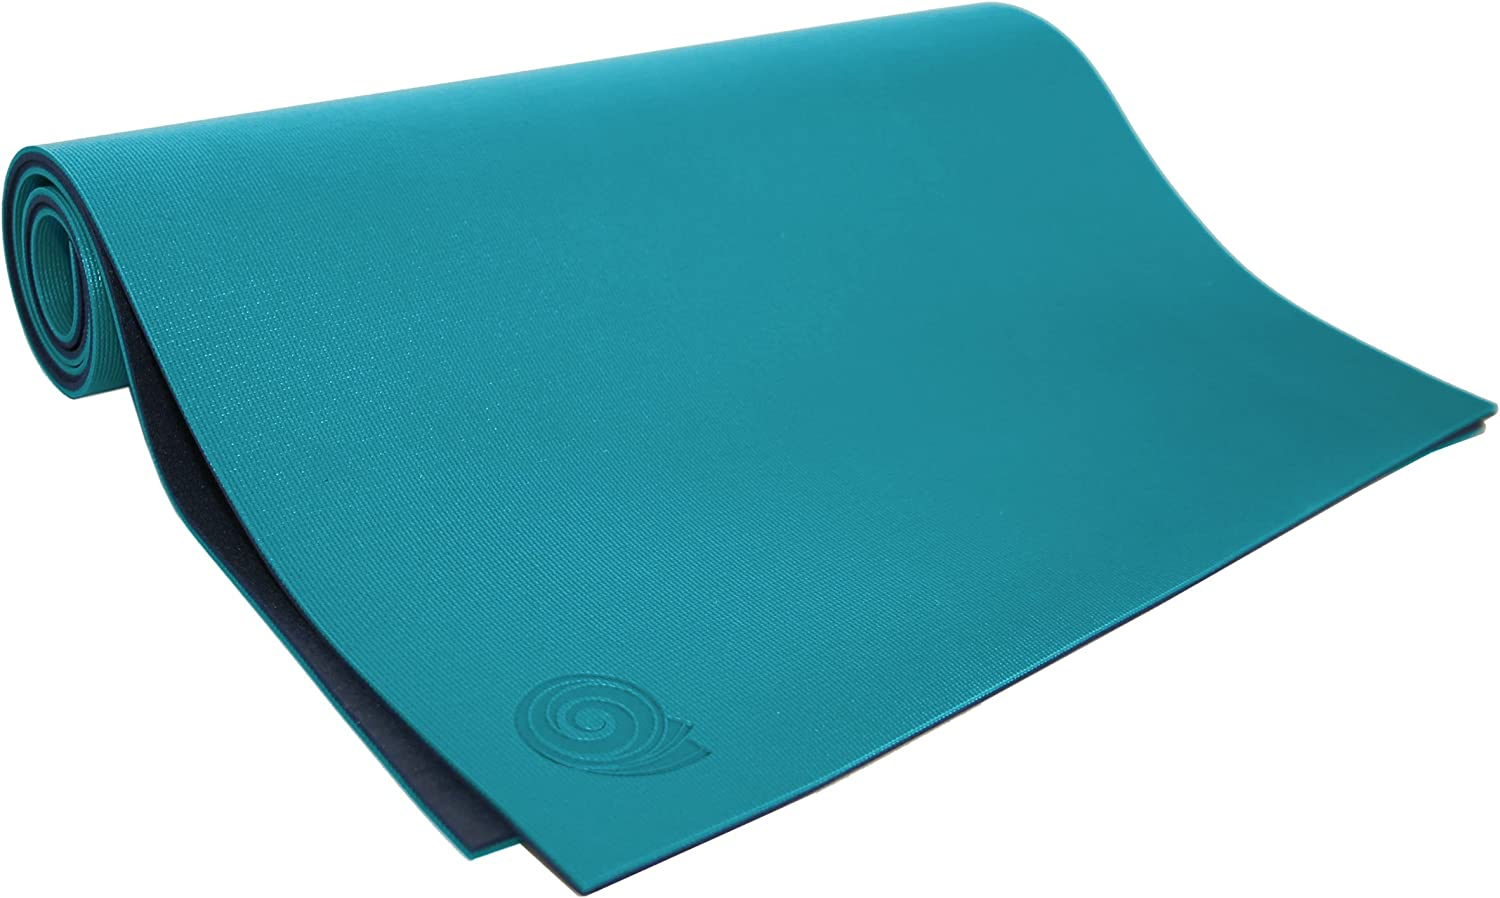 Koru Fold and Roll Premium Yoga Mat – Patented Design, Cleaner Alternative to Traditional Yoga Mats, 6mm Extra Thick, 24 x 68